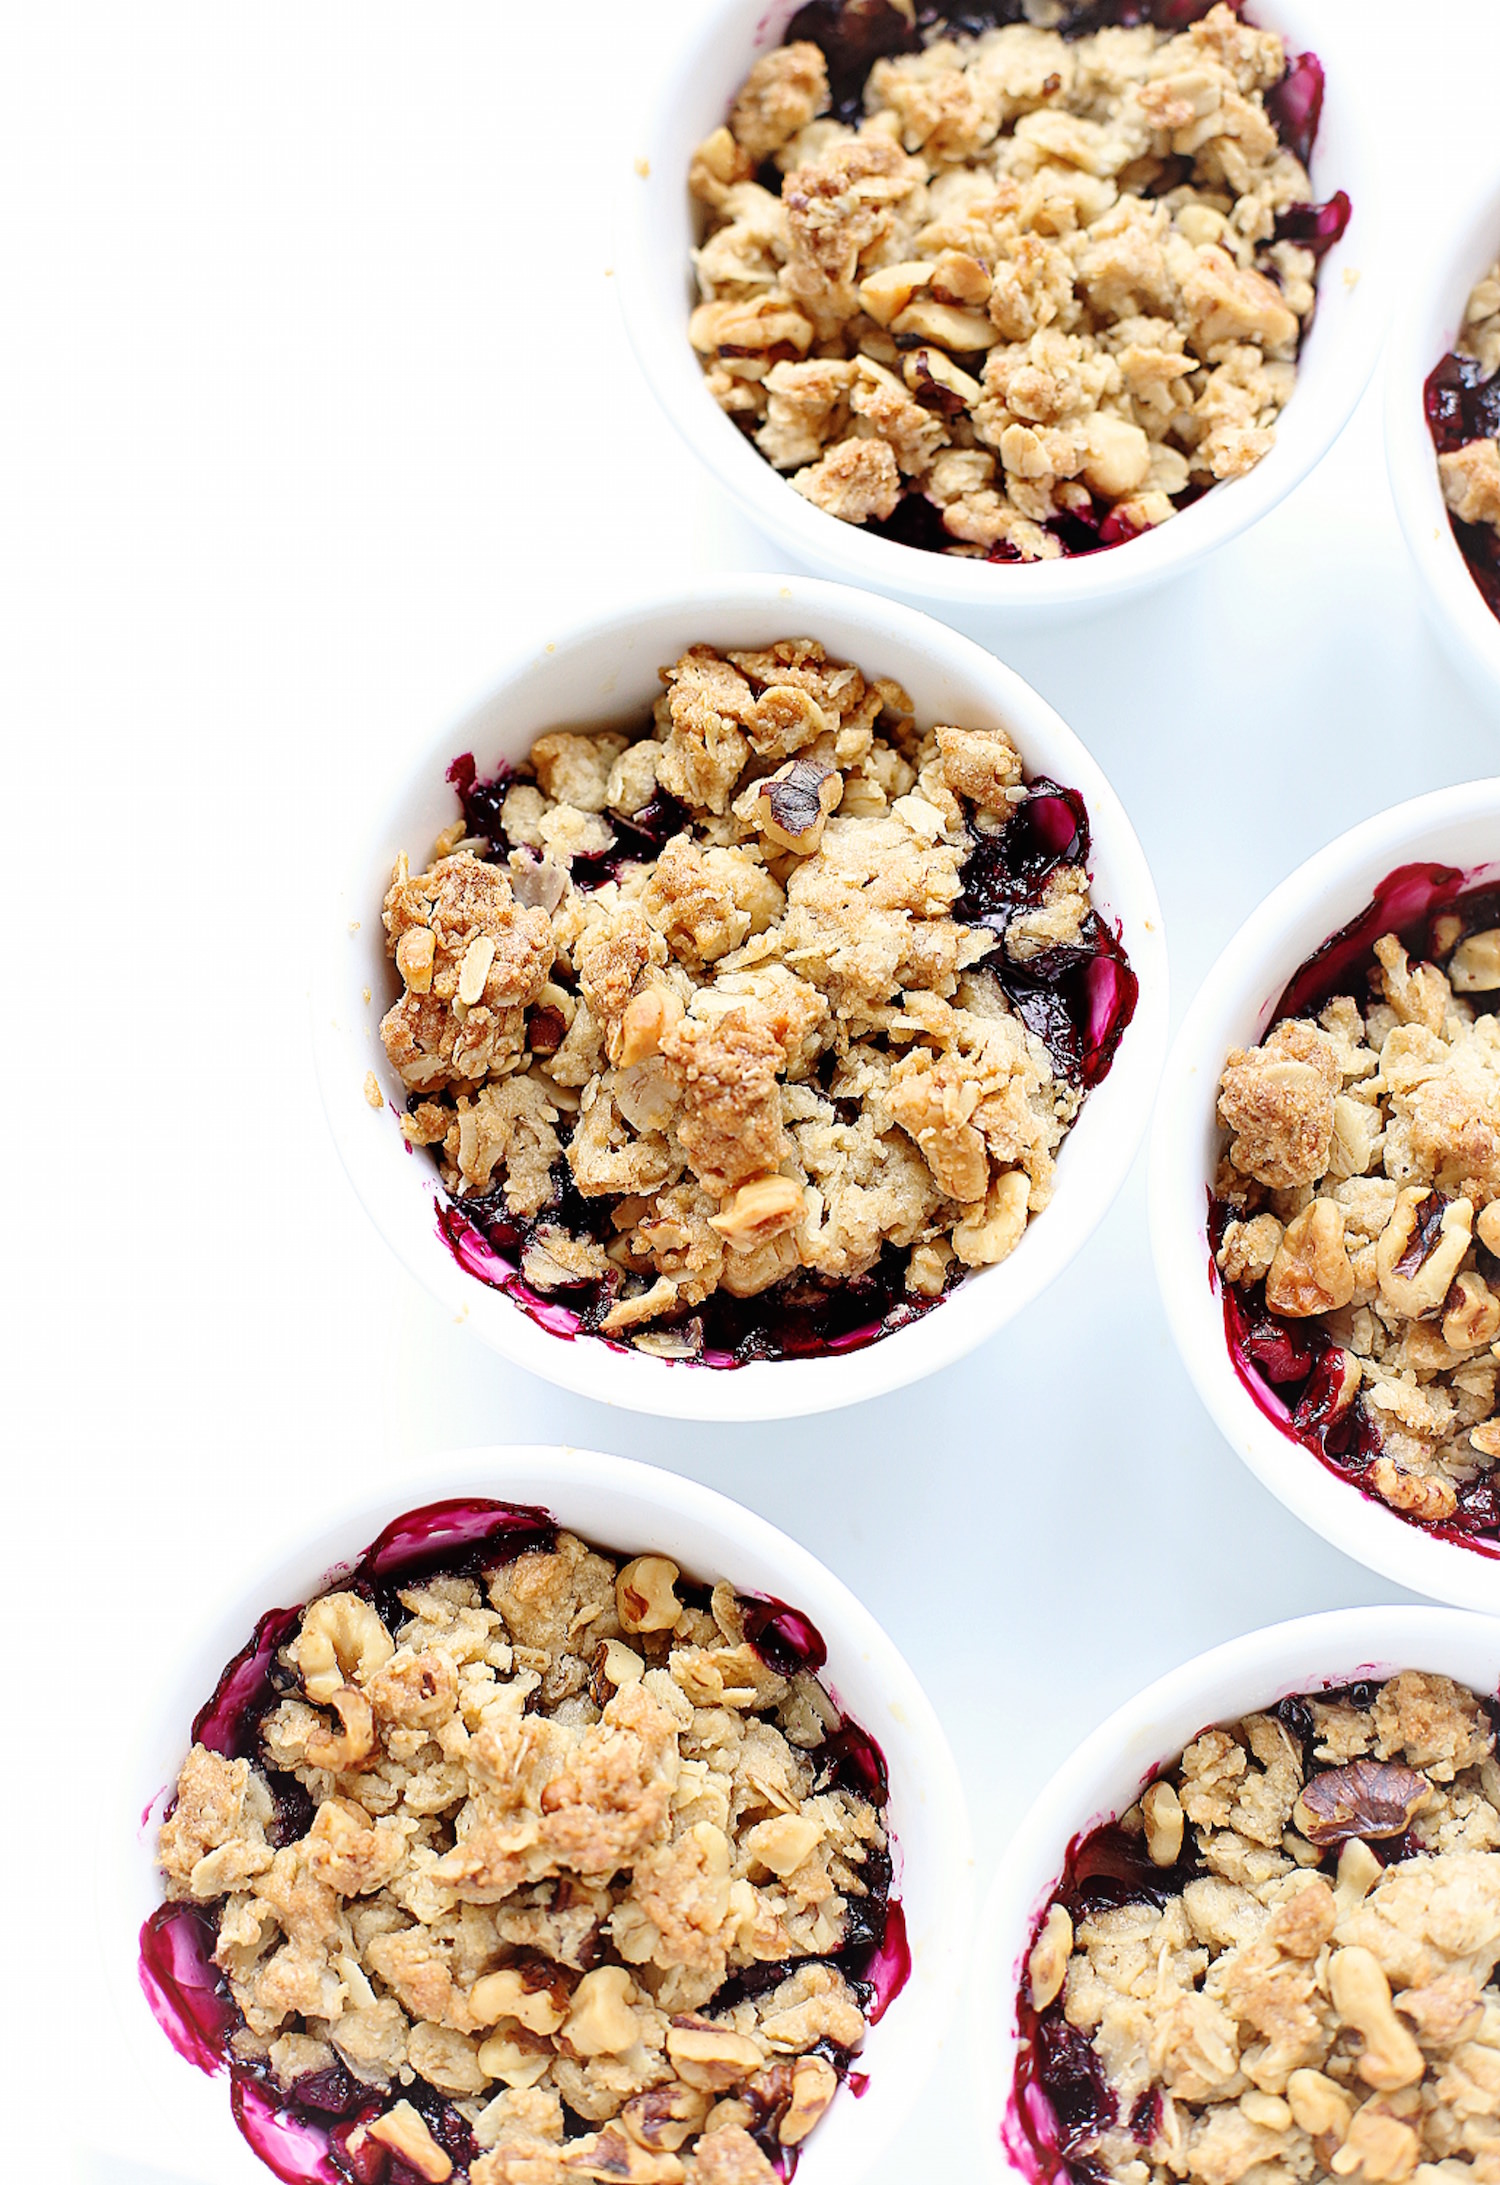 Blueberry Oat Crumble: tart and sweet blueberries topped with an oatmeal cookie dough-like crumble. Perfect summer dessert! Video included. | TrufflesandTrends.com